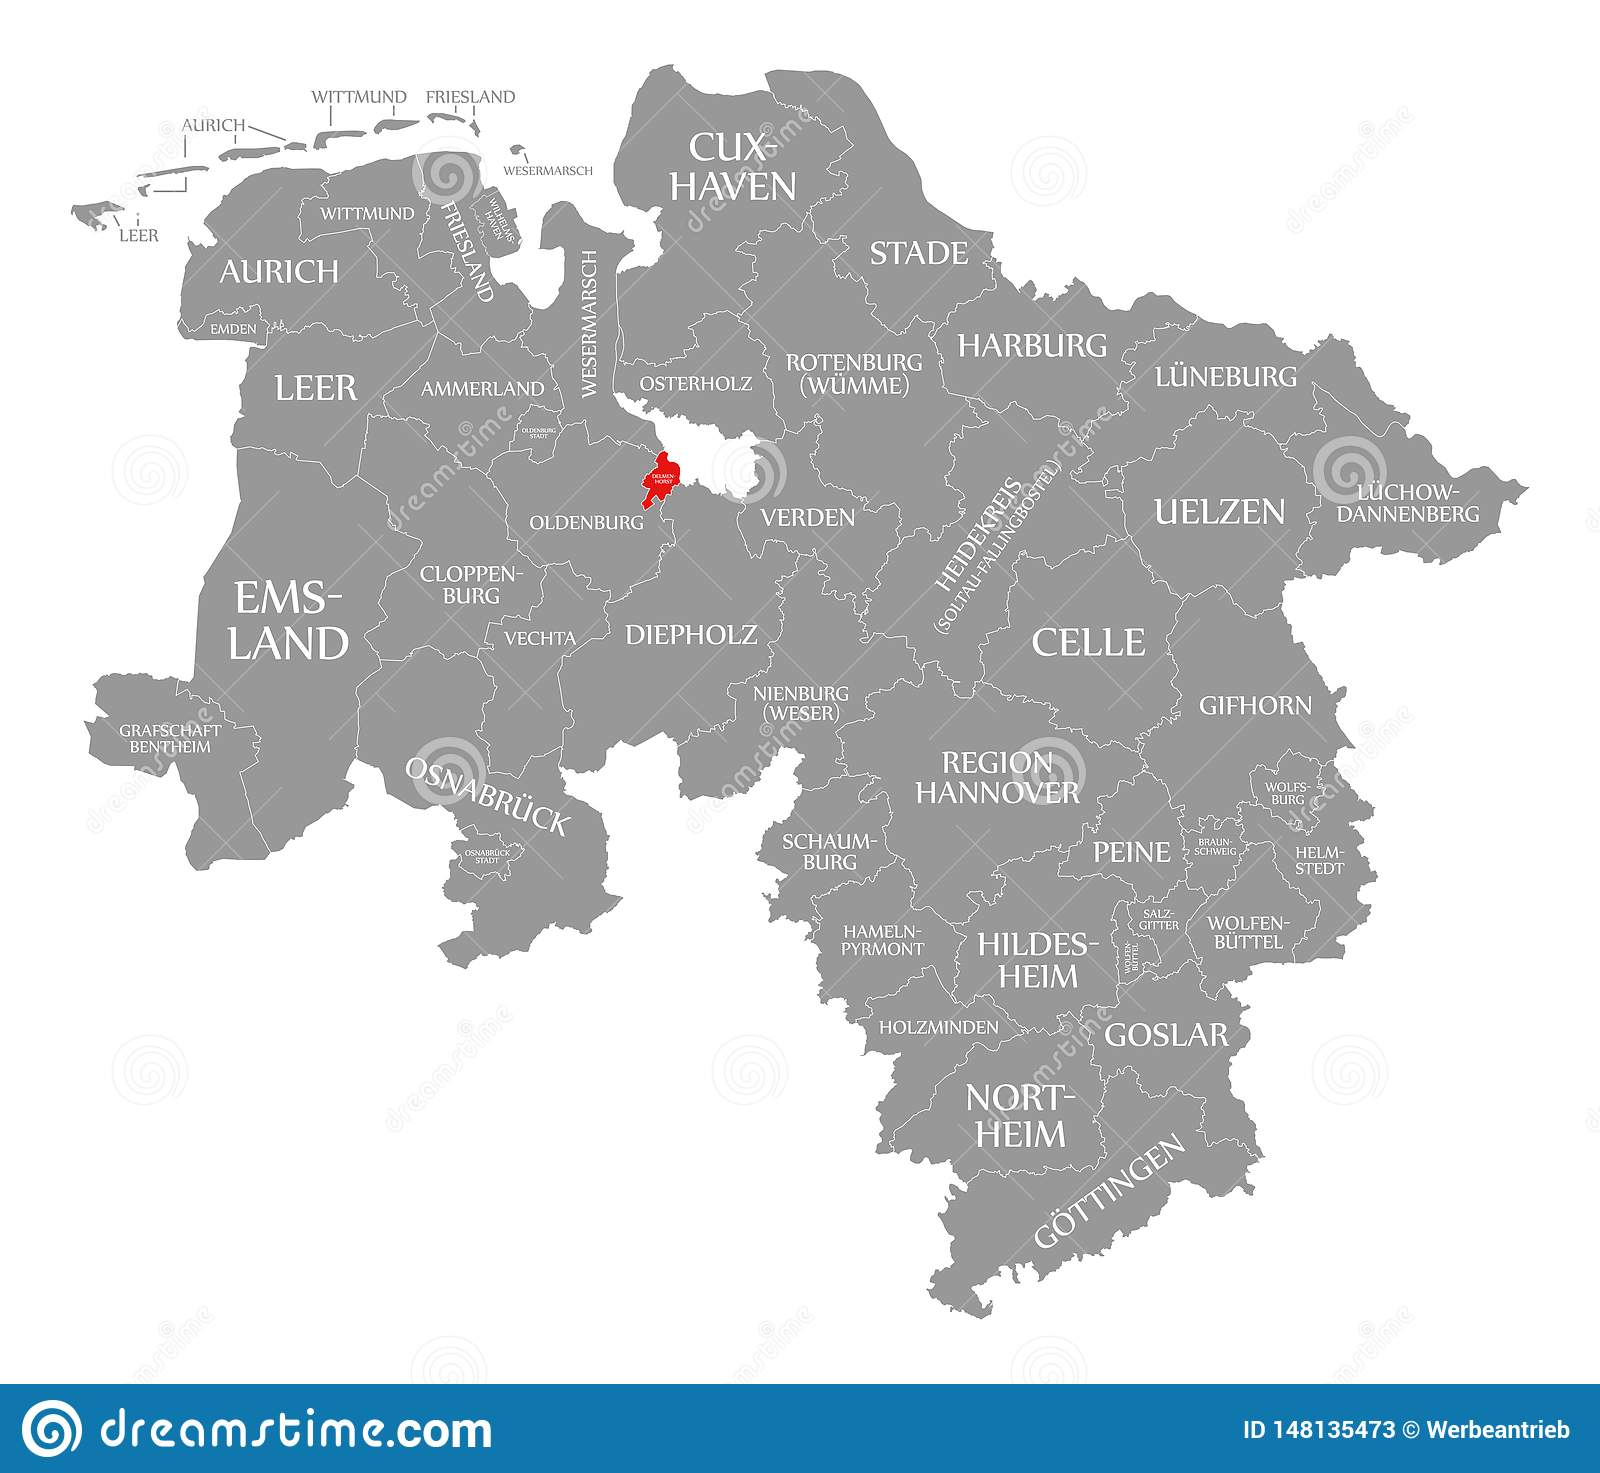 Simple Map Of Germany.Delmenhorst County Red Highlighted In Map Of Lower Saxony Germany